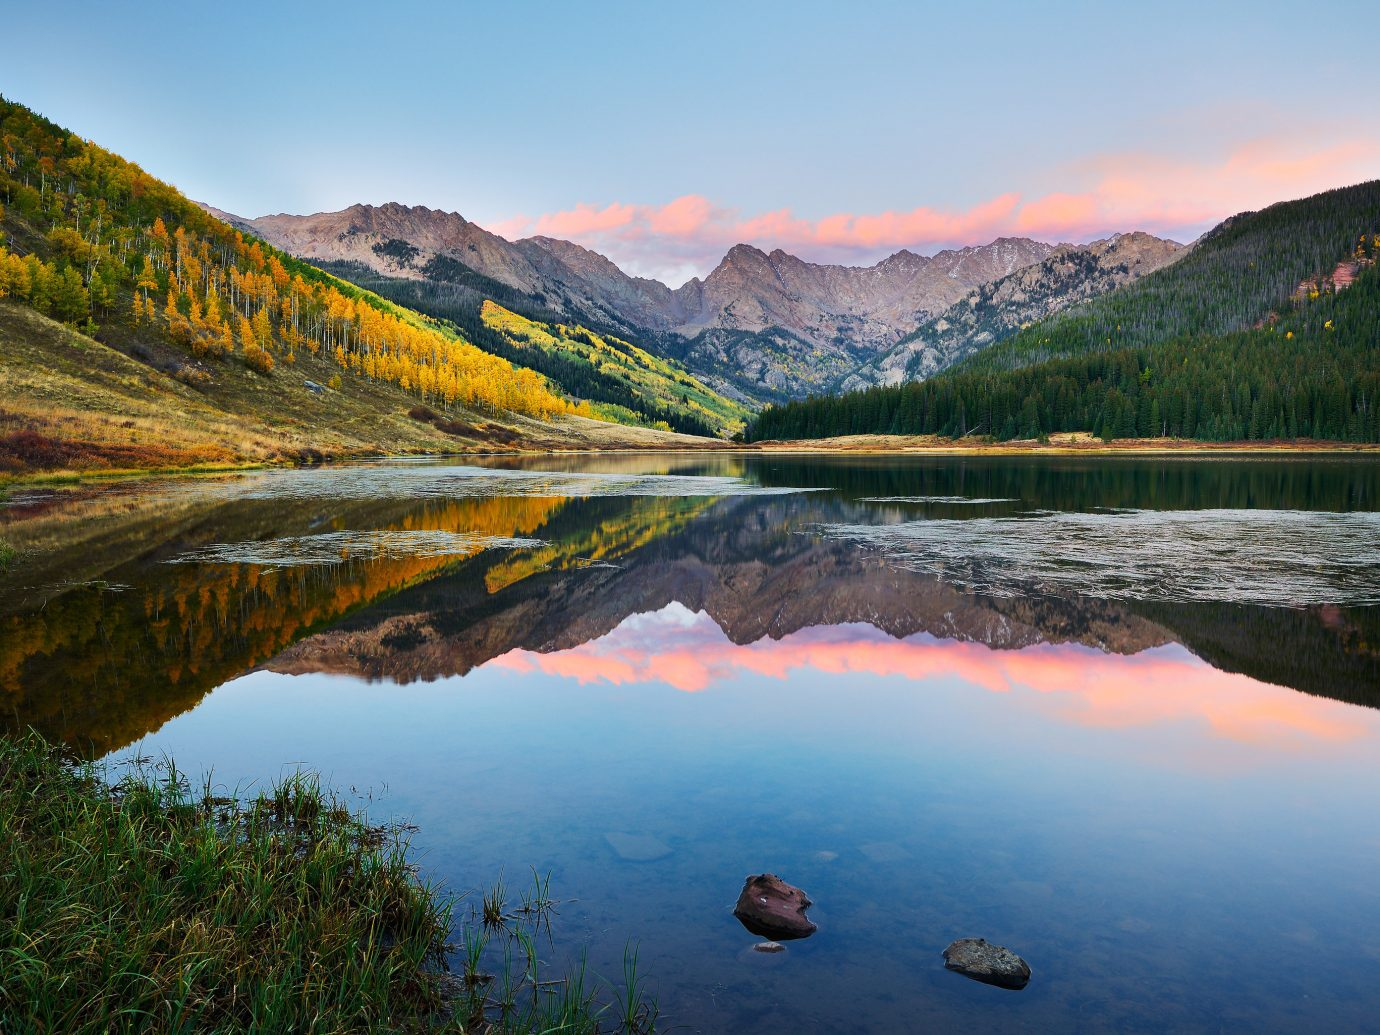 alpine skiing Mountains + Skiing Trip Ideas sky water mountain outdoor Nature mountainous landforms Lake reflection River wilderness valley canyon body of water loch tarn mountain range reservoir morning landscape autumn surrounded